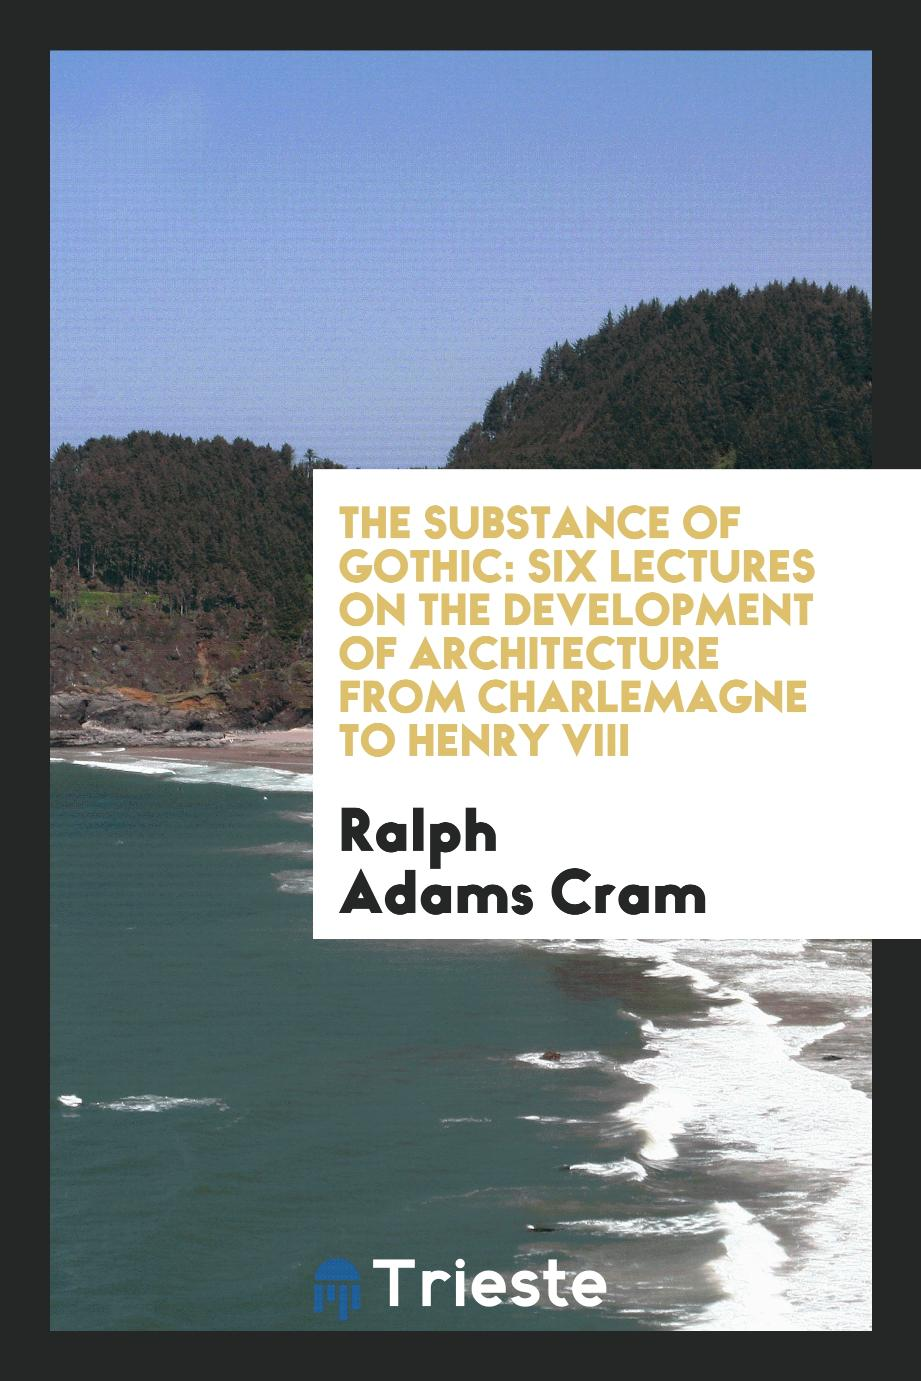 The Substance of Gothic: Six Lectures on the Development of Architecture from Charlemagne to Henry VIII